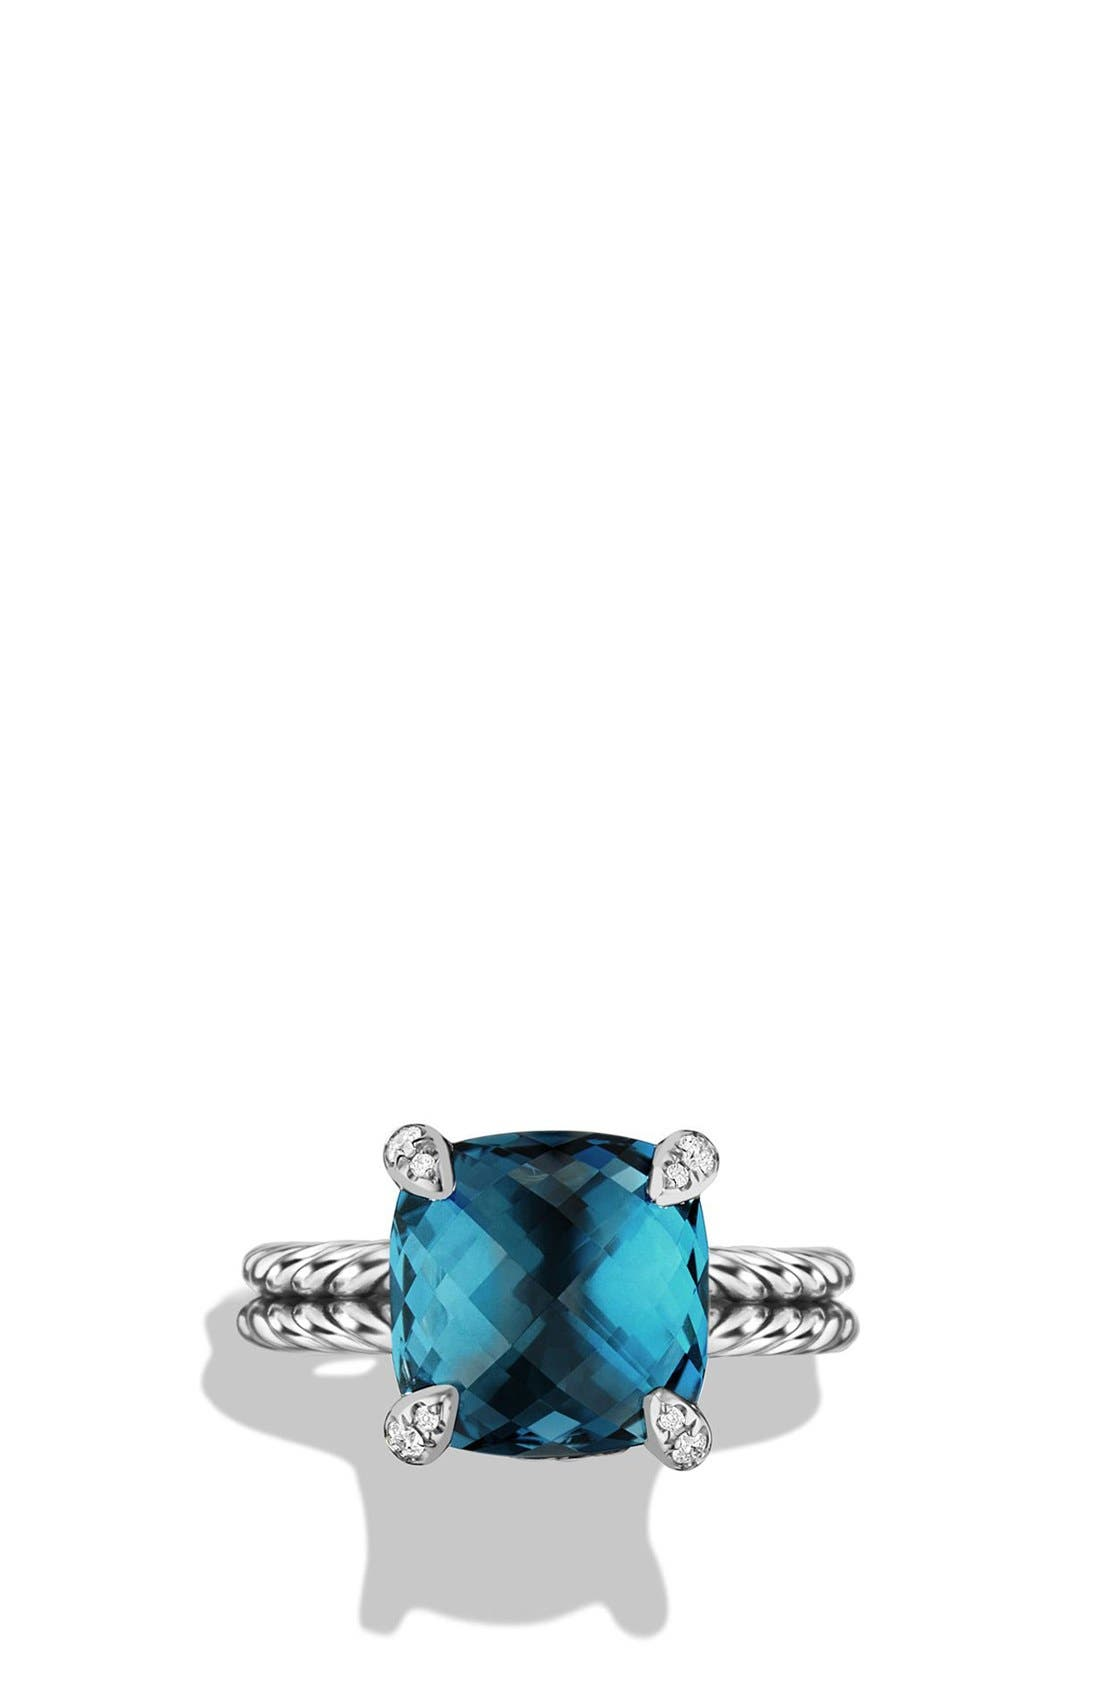 DAVID YURMAN,                             'Châtelaine' Ring with Semiprecious Stone and Diamonds,                             Alternate thumbnail 4, color,                             SILVER/ HAMPTON BLUE TOPAZ